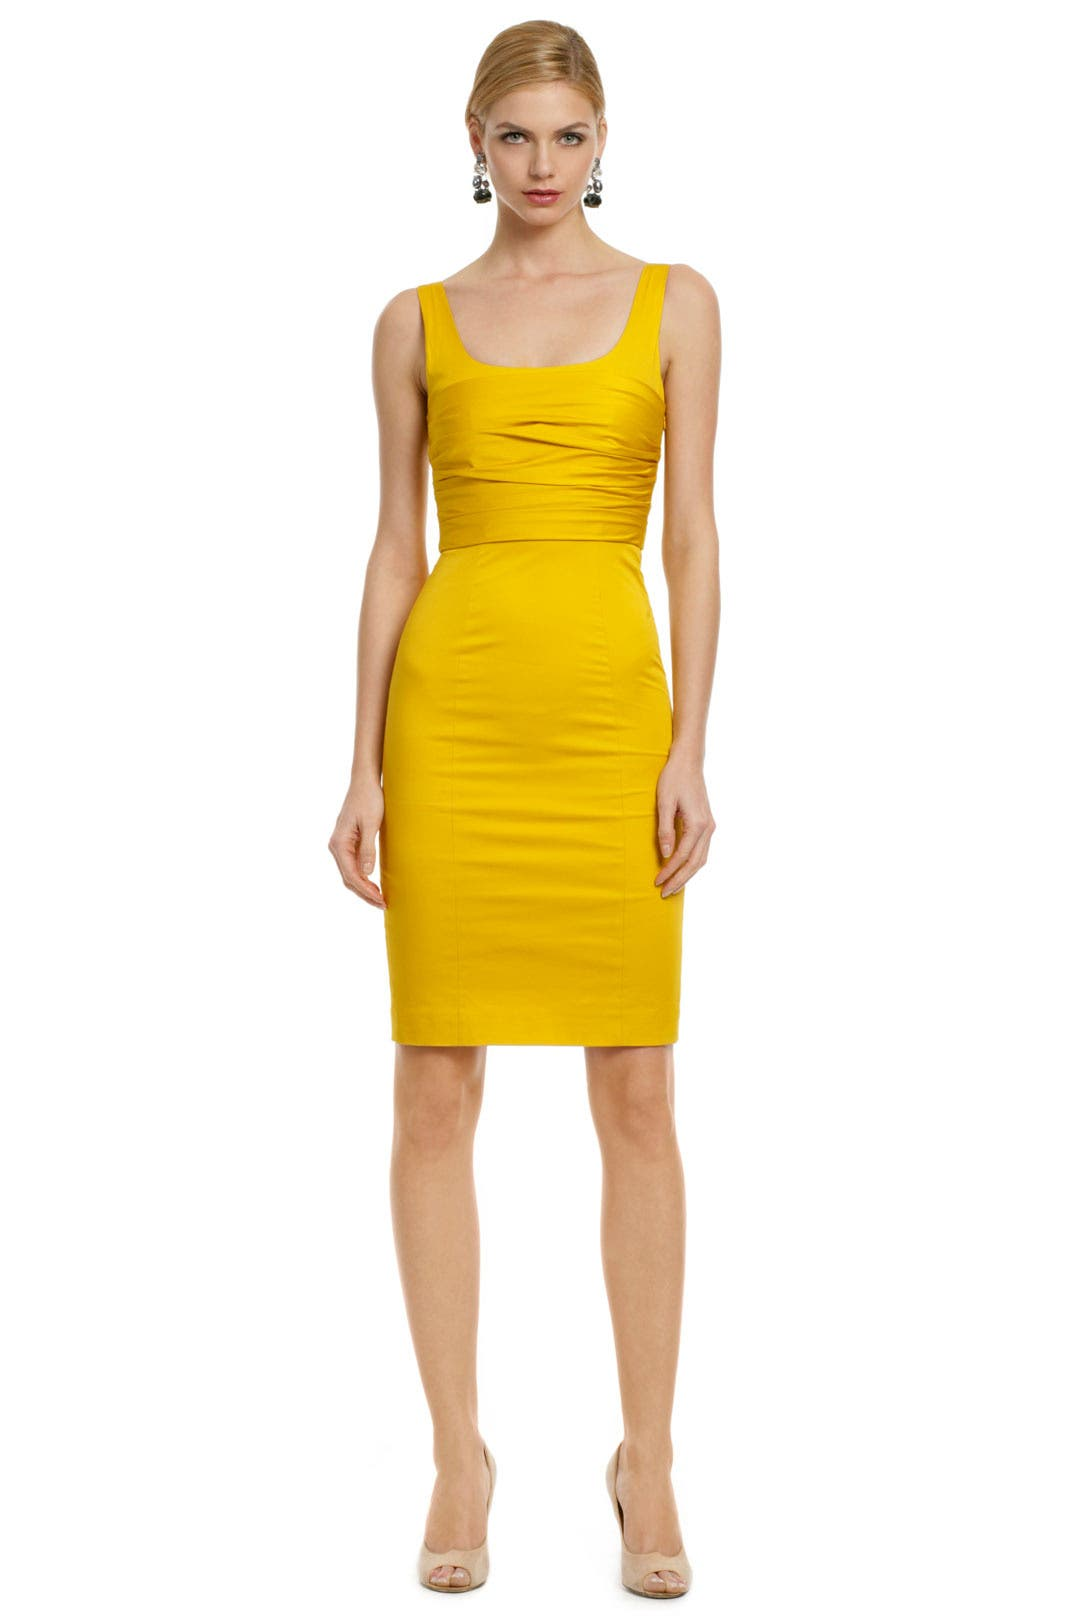 Yellow Rose Bodice Dress by Moschino Cheap And Chic for $30 | Rent ...